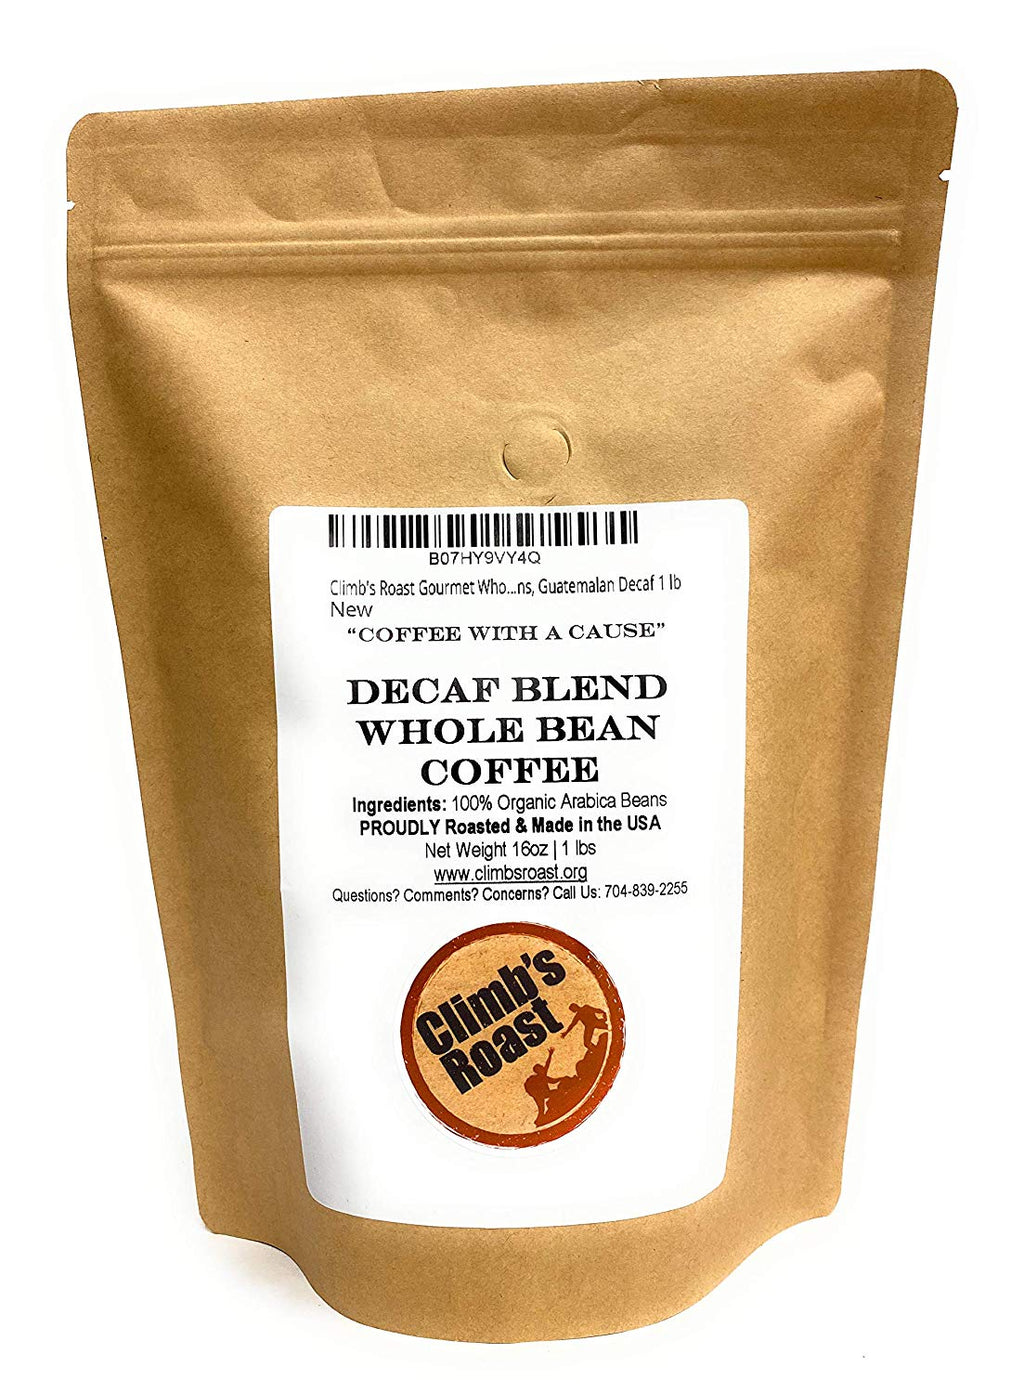 Climb's Roast Gourmet Swiss Water Process Decaf Whole Roasted Coffee Beans, 1 Pound, Guatemalan Peru Blend